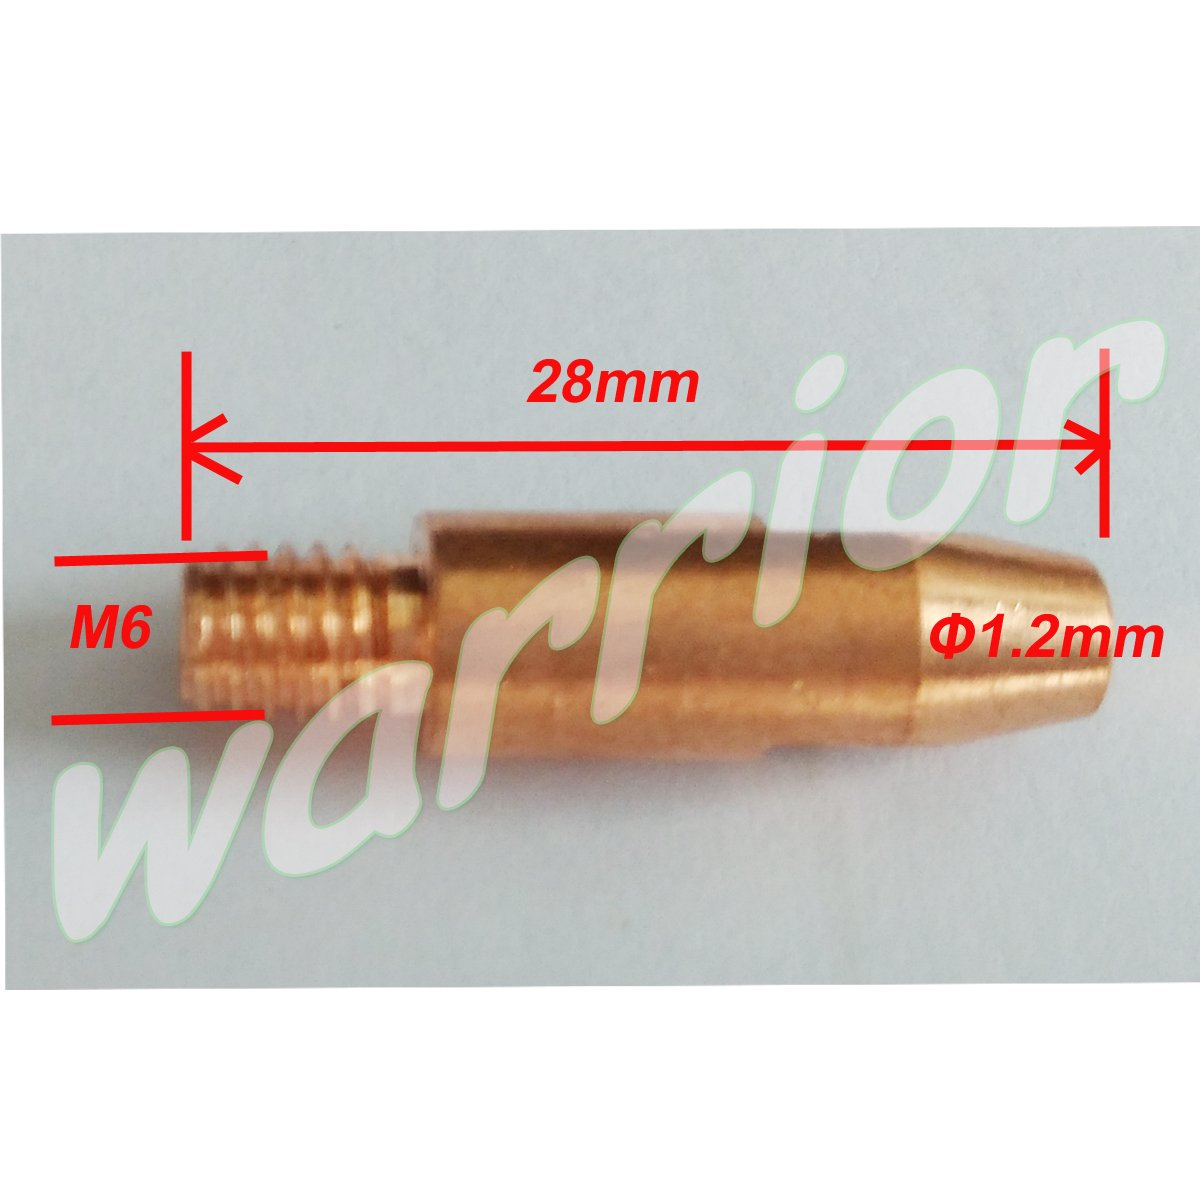 Warrior 19pcs Accessories Kit For Binzel MIG Welding Torch MB36 MB 36KD Nozzles Contact Tips Holder 1.2mm Gas Diffusers